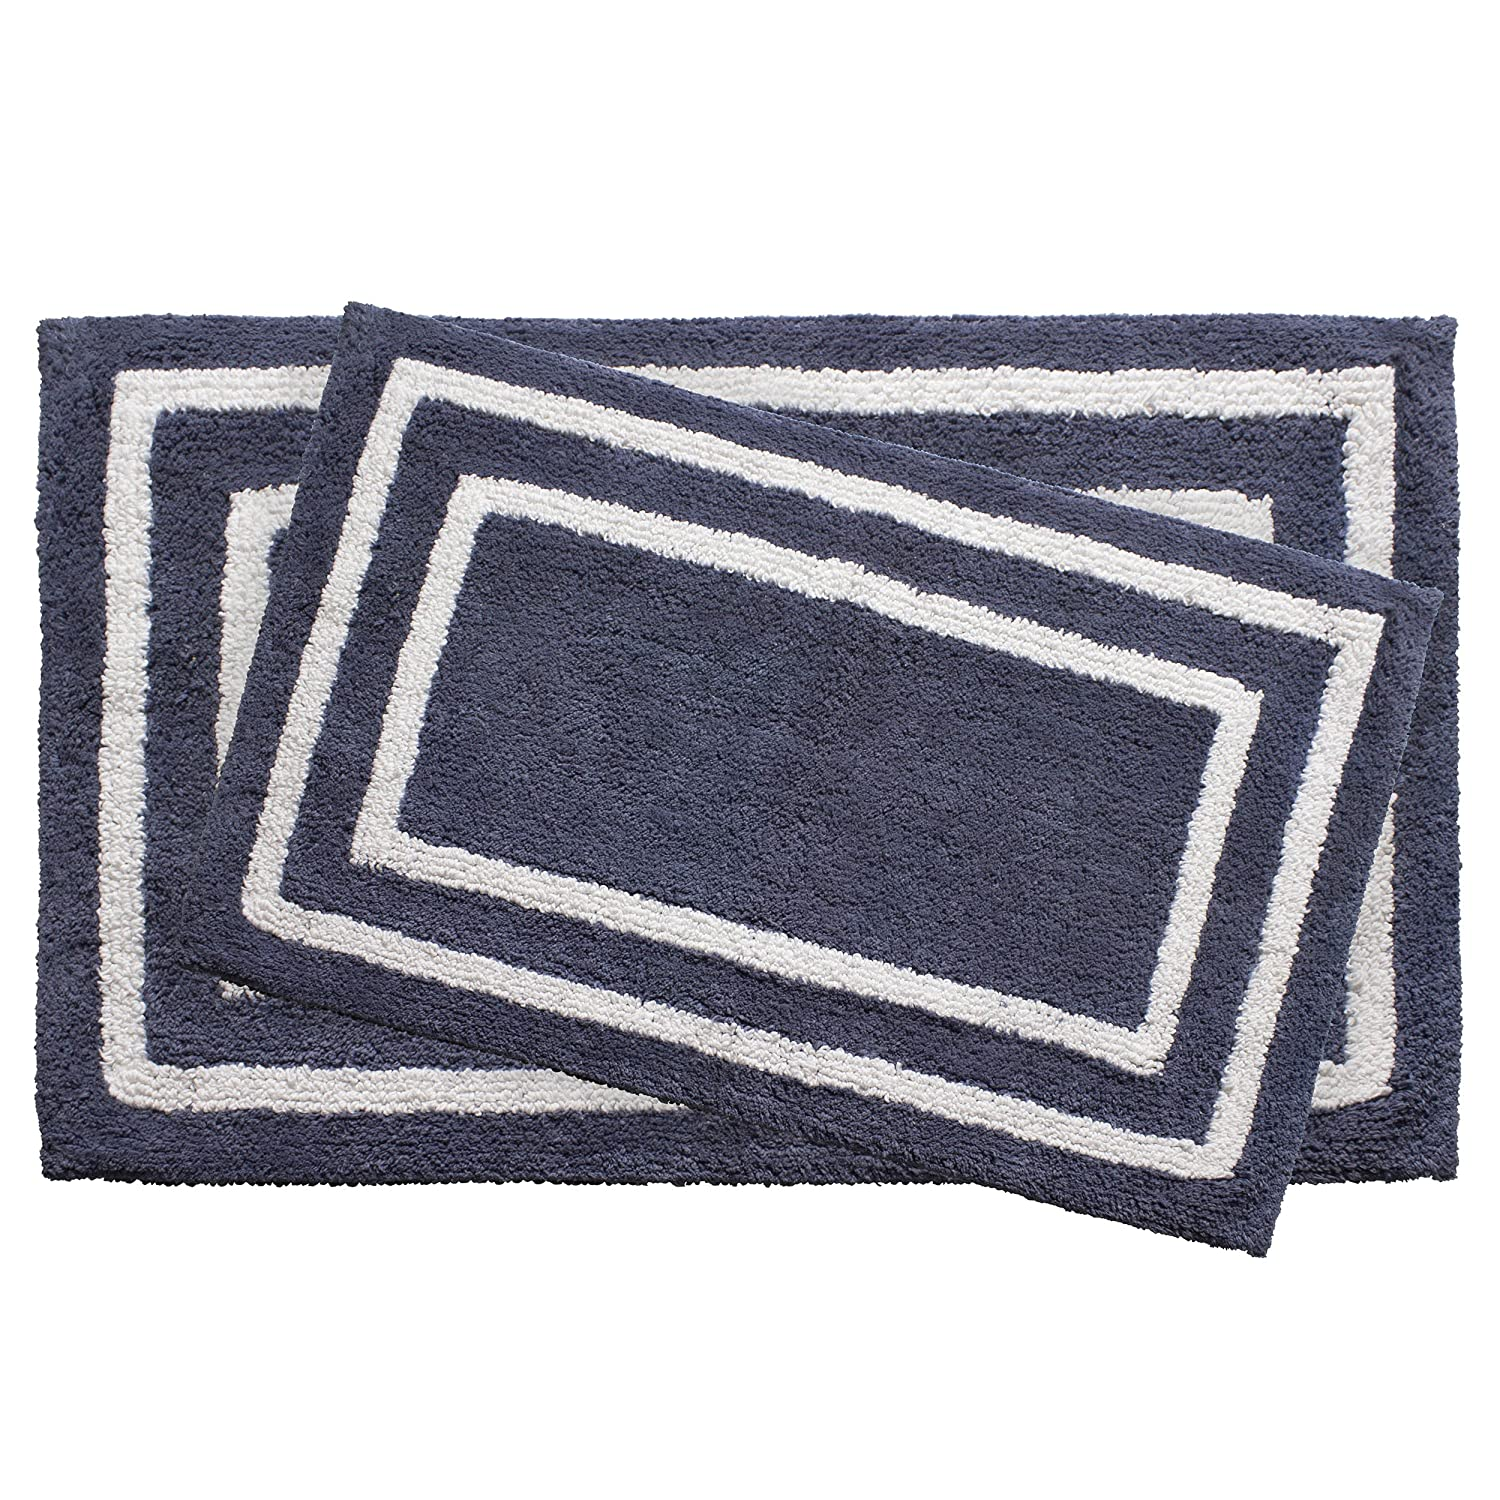 Bath Mat in Aquatic Blue Creative Home Ideas YMB003895 x 34 in Jean Pierre Reversible Cotton Plush Double Border 21 in